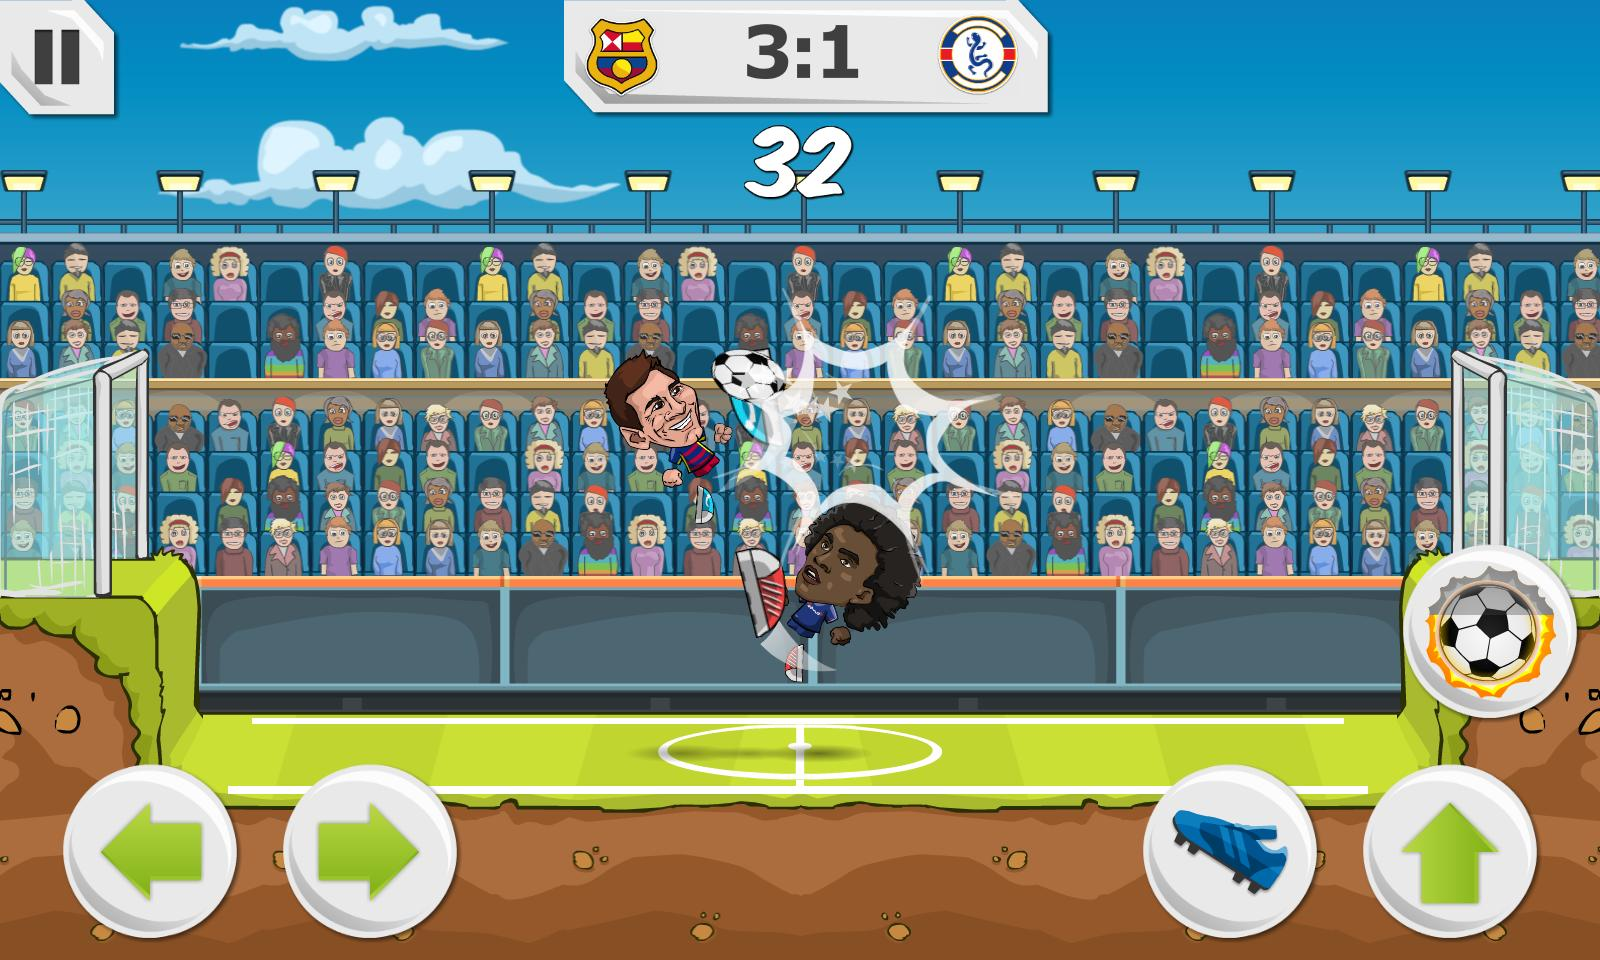 Y9 Football League for Android - APK Download